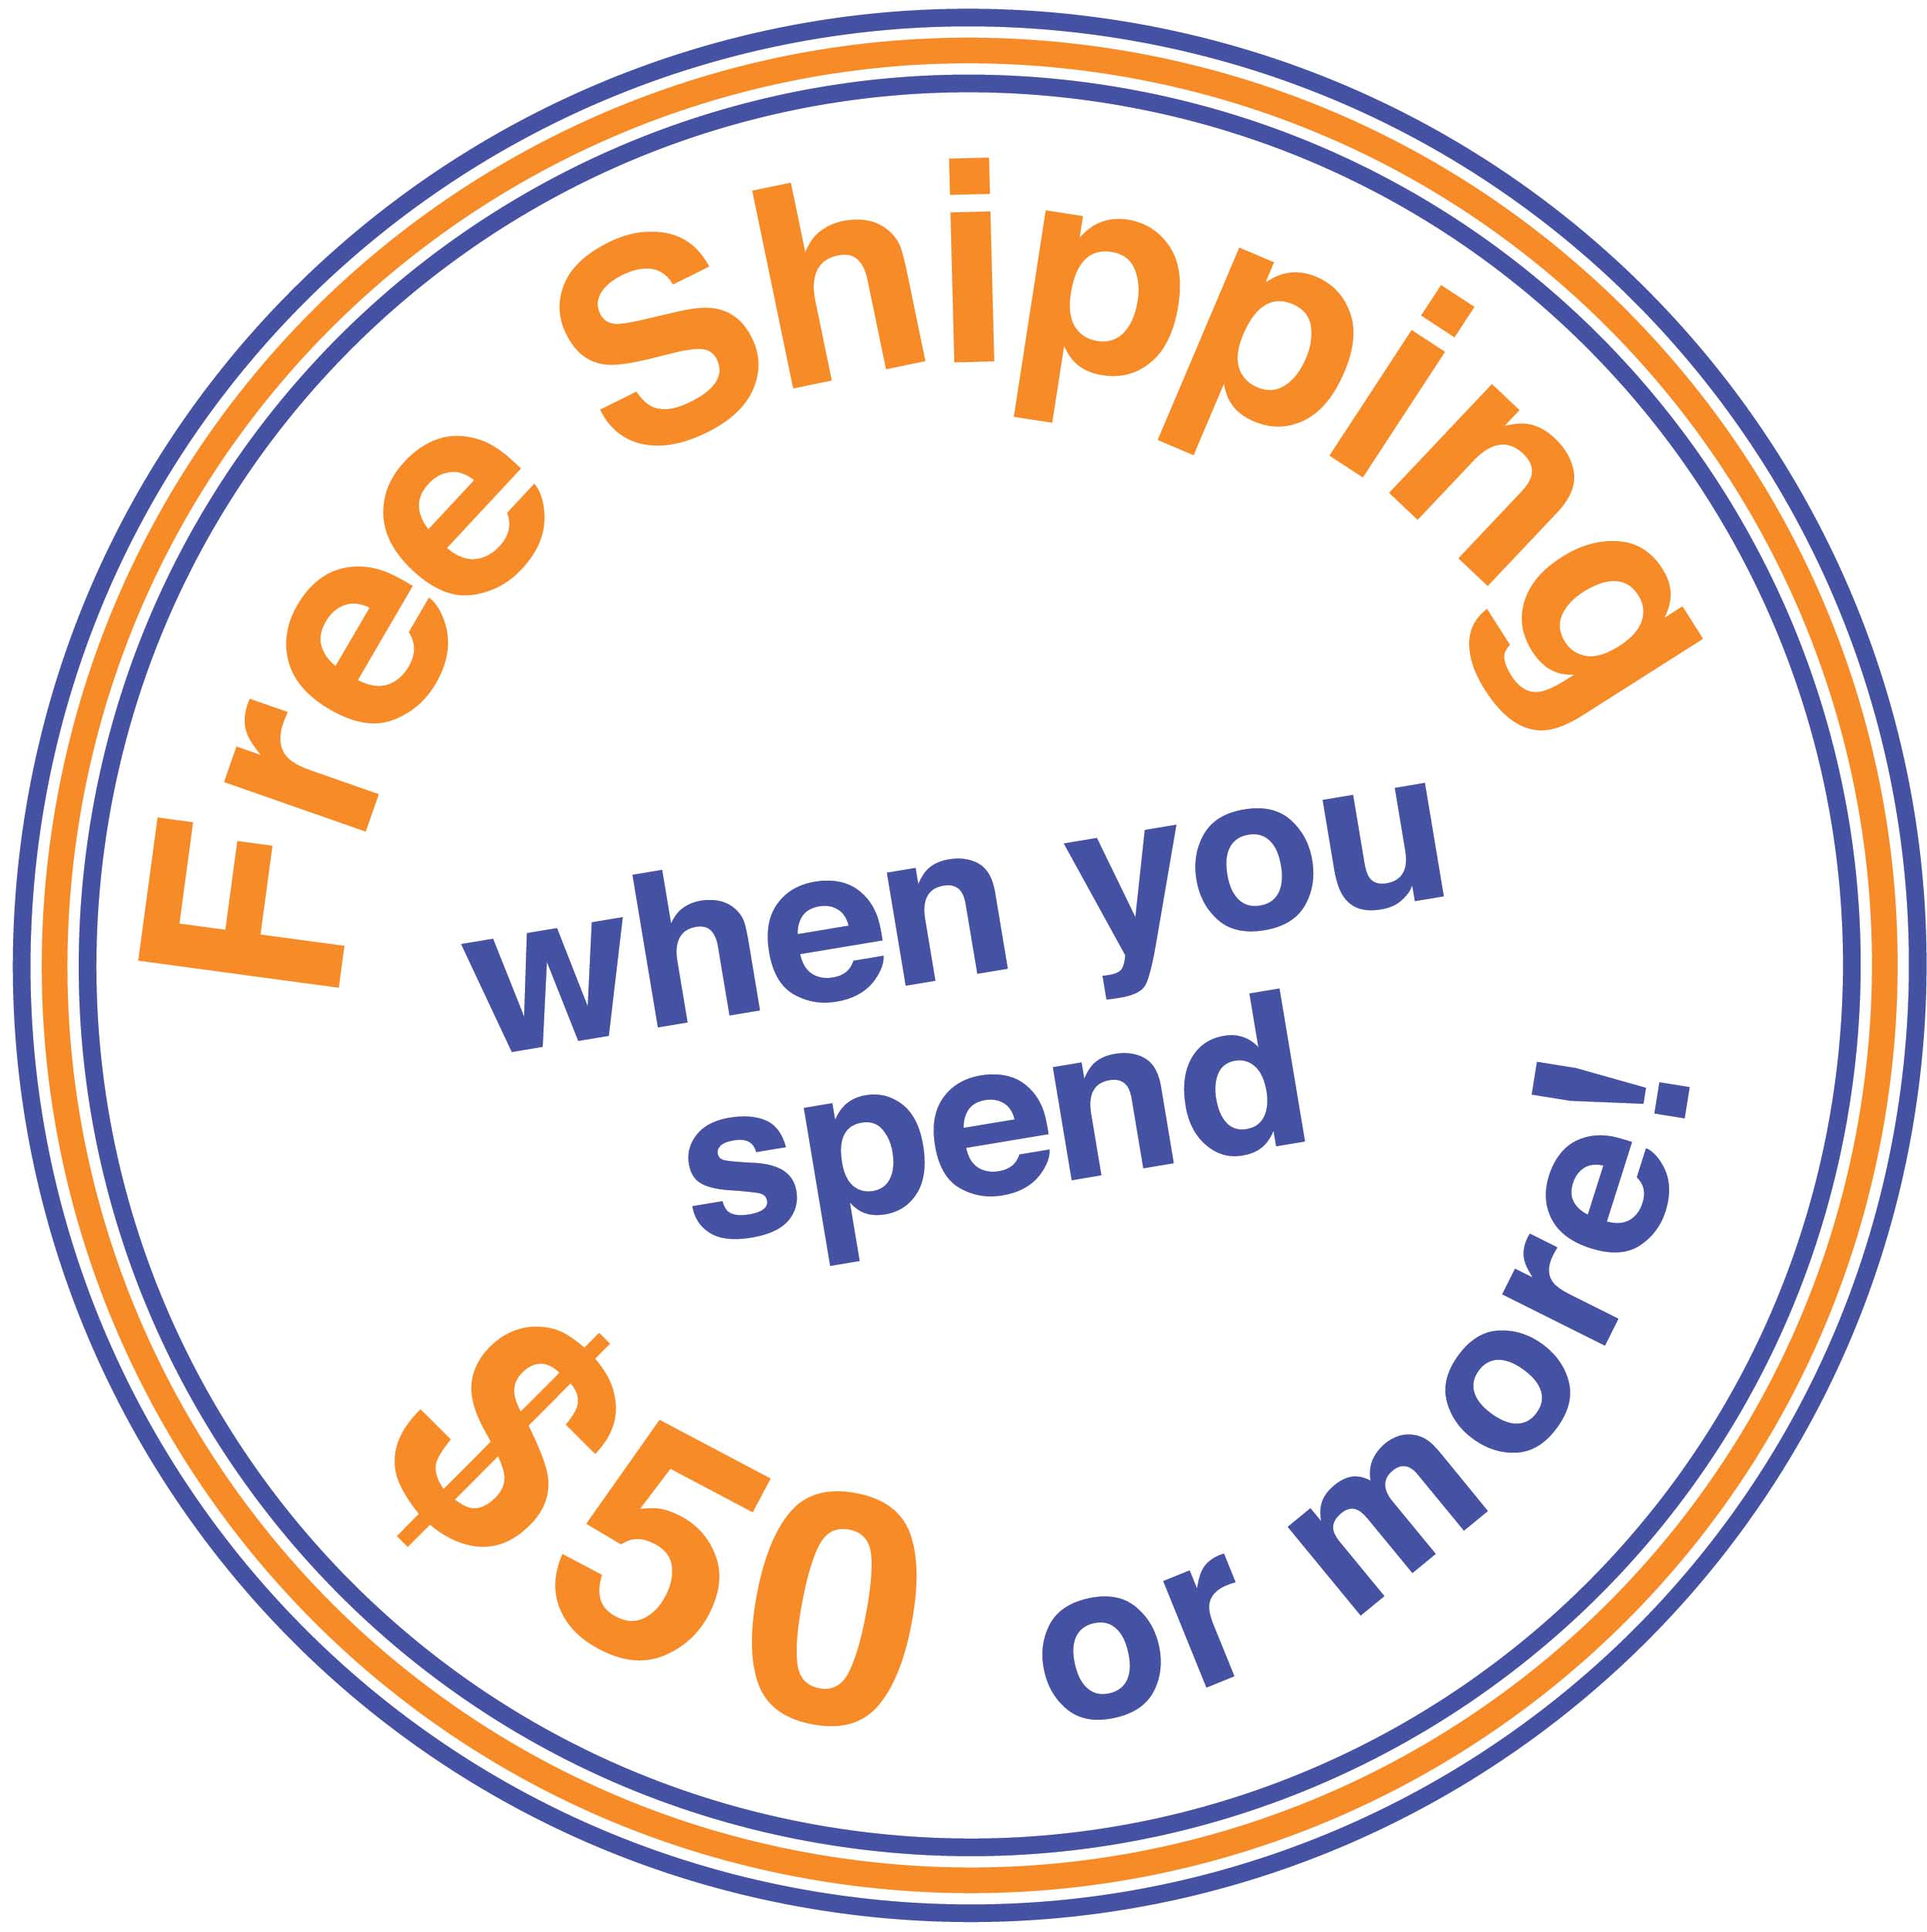 freeshippingad-circle.jpg